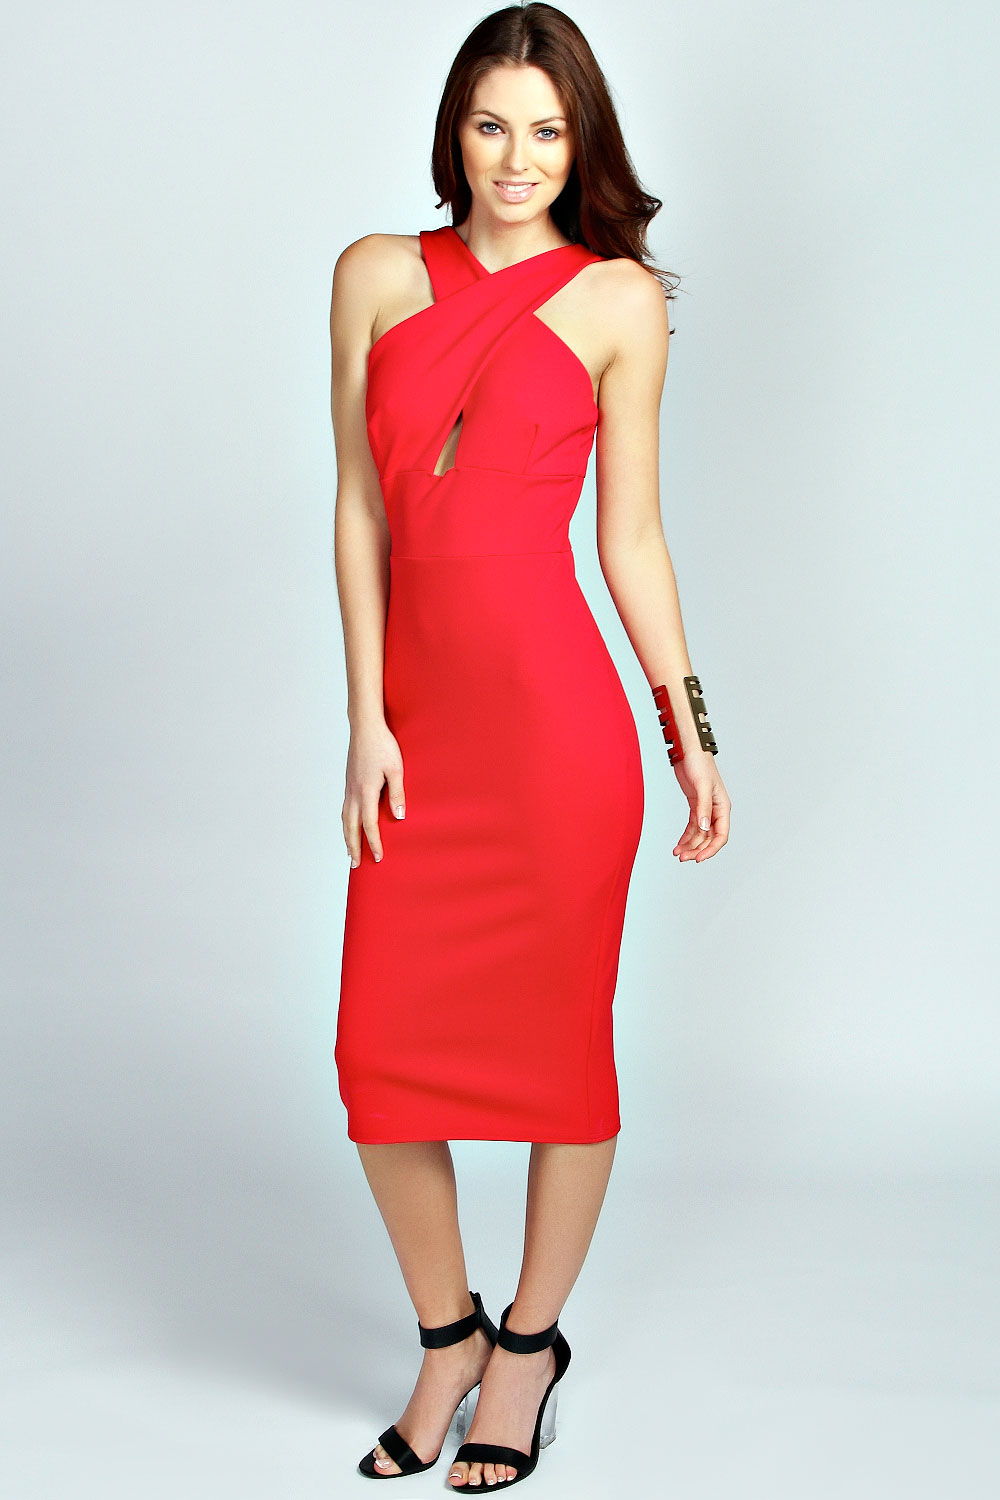 Boohoo-Jasmine-Cross-Over-Bodycon-Dress